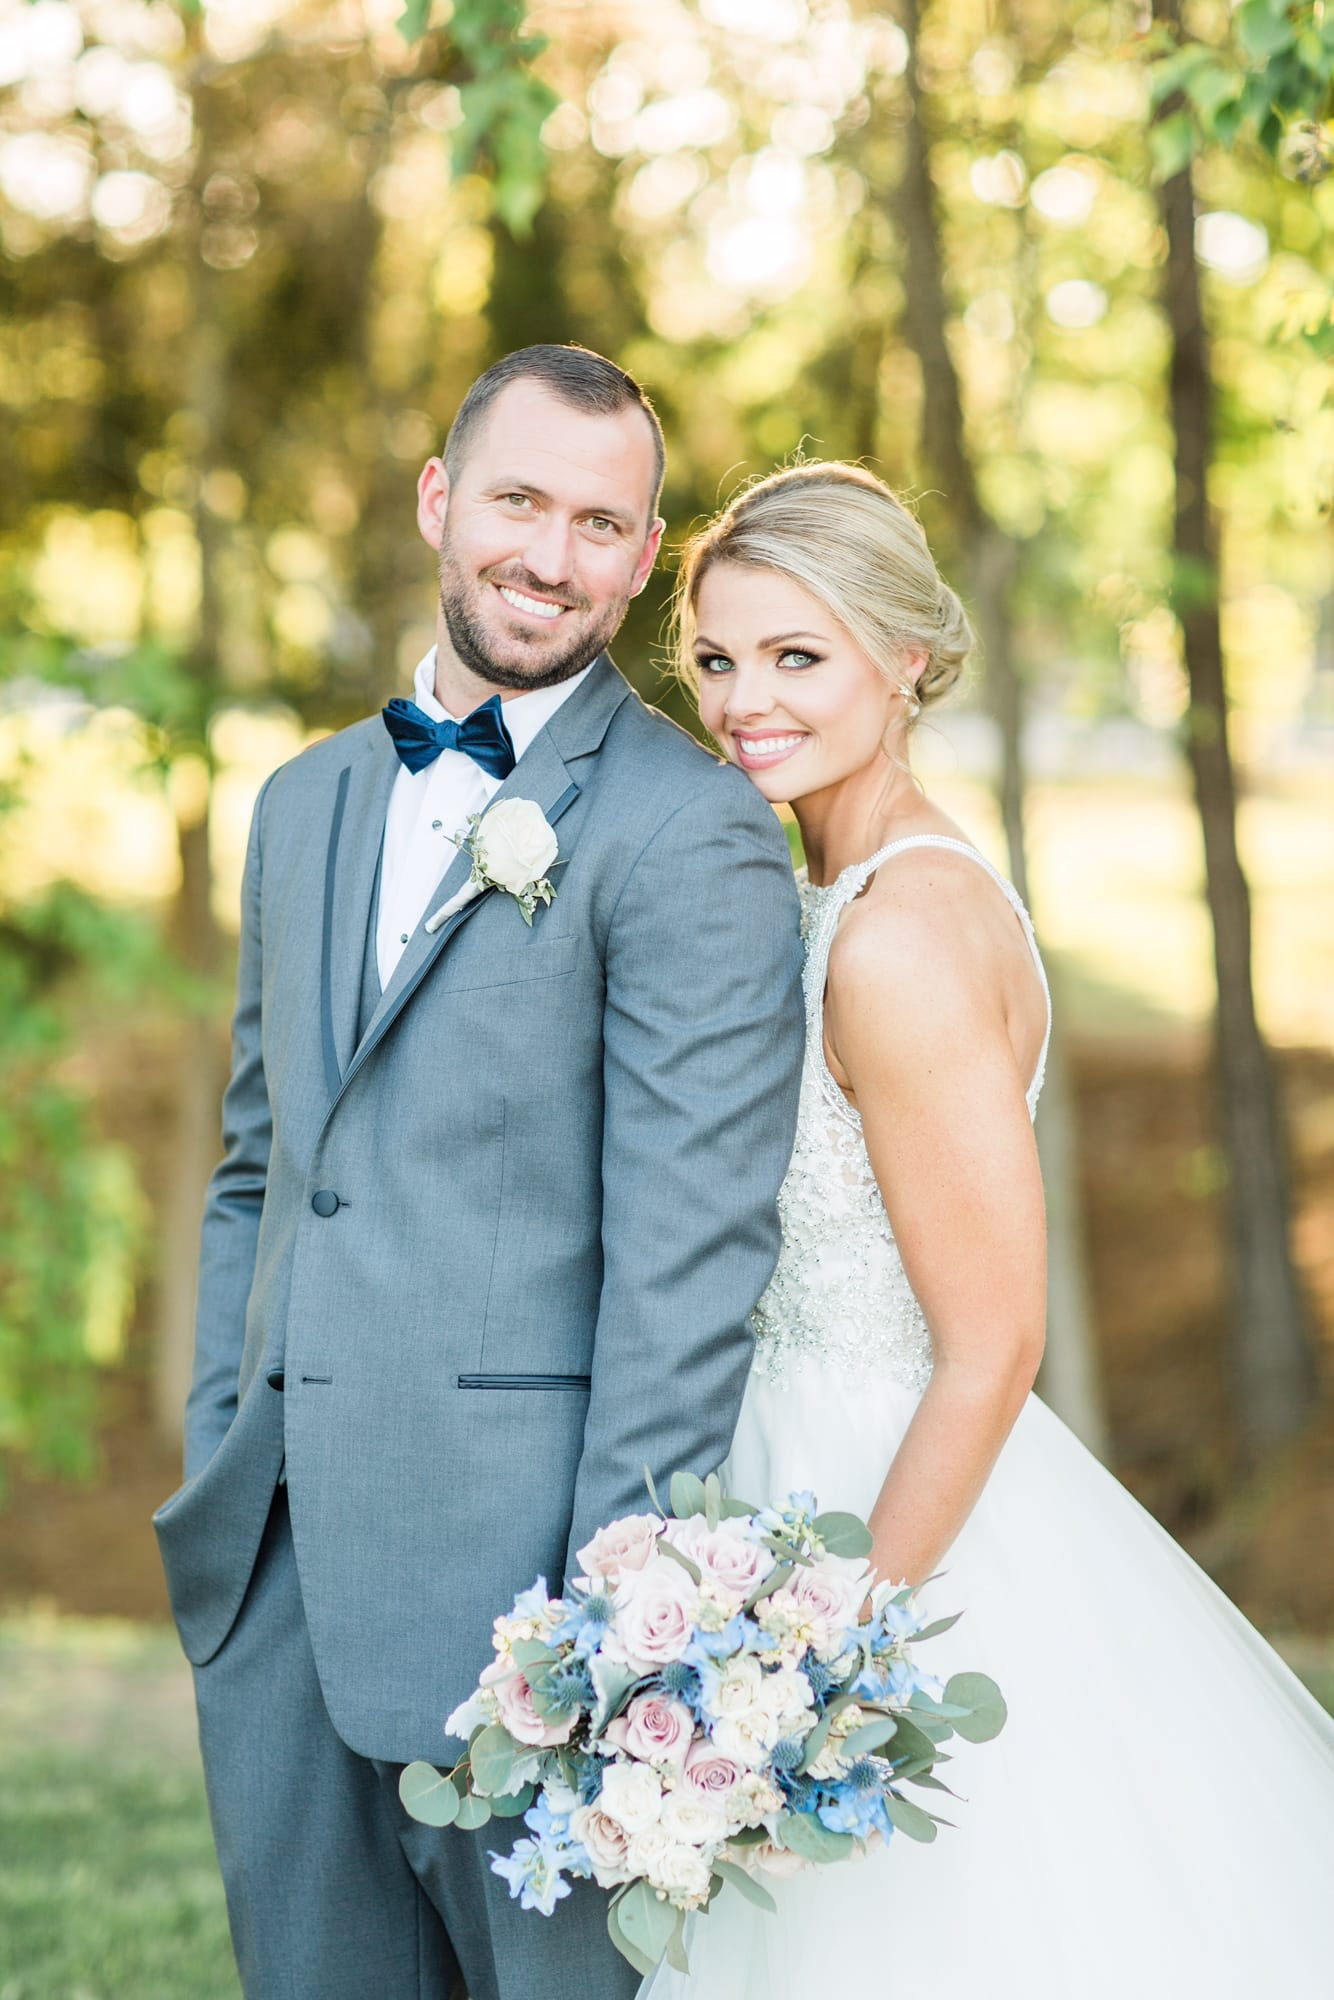 Pretty Summer Wedding And A Princess Ballgown - Maggie Bride wearing Lisette by Maggie Sottero